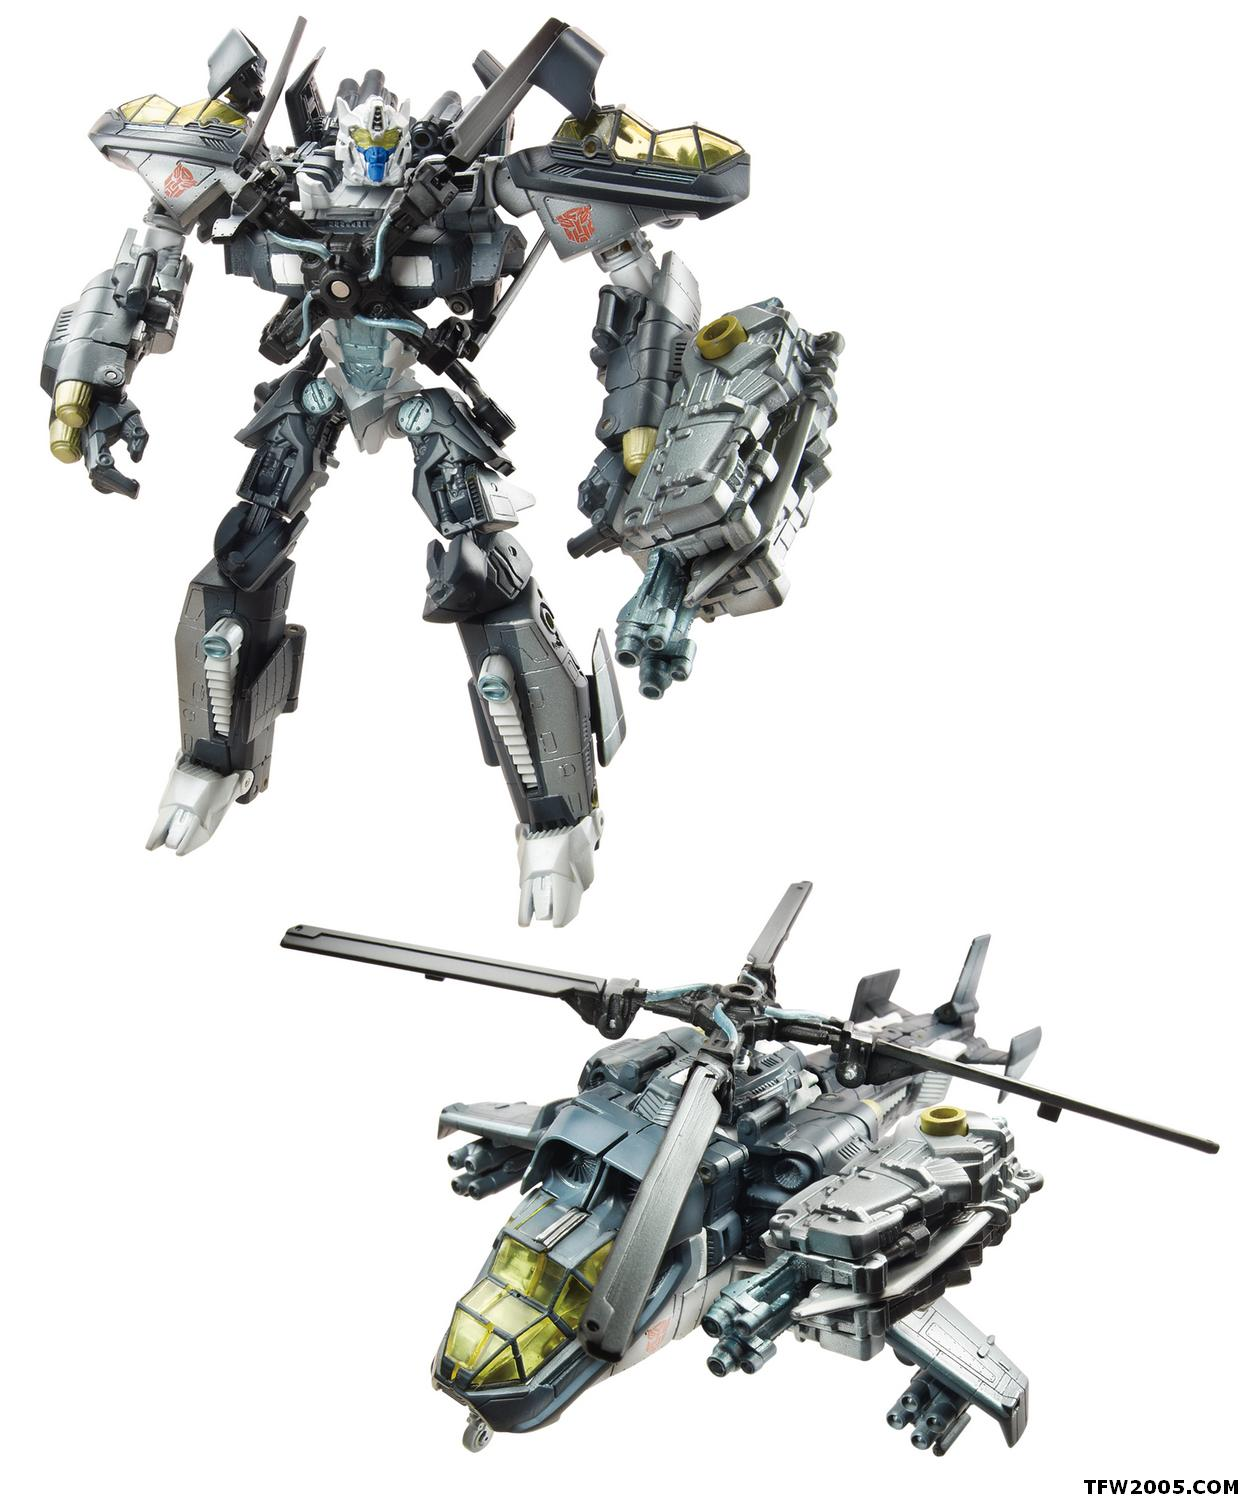 transformer helicopter with Official High Resolution Transformers Mech Tech Images 171489 on MECHTECH 20VOYAGER 20SKYHAMMER 20 both 20modes  2029702 moreover 2013 10 01 archive as well 154162 The Power Grid Of The Future Will Be Controlled By Neurons In A Petri Dish furthermore Decepticon Ravage Photo likewise ARKHAM KNIGH S GUNSHIP 548552933.